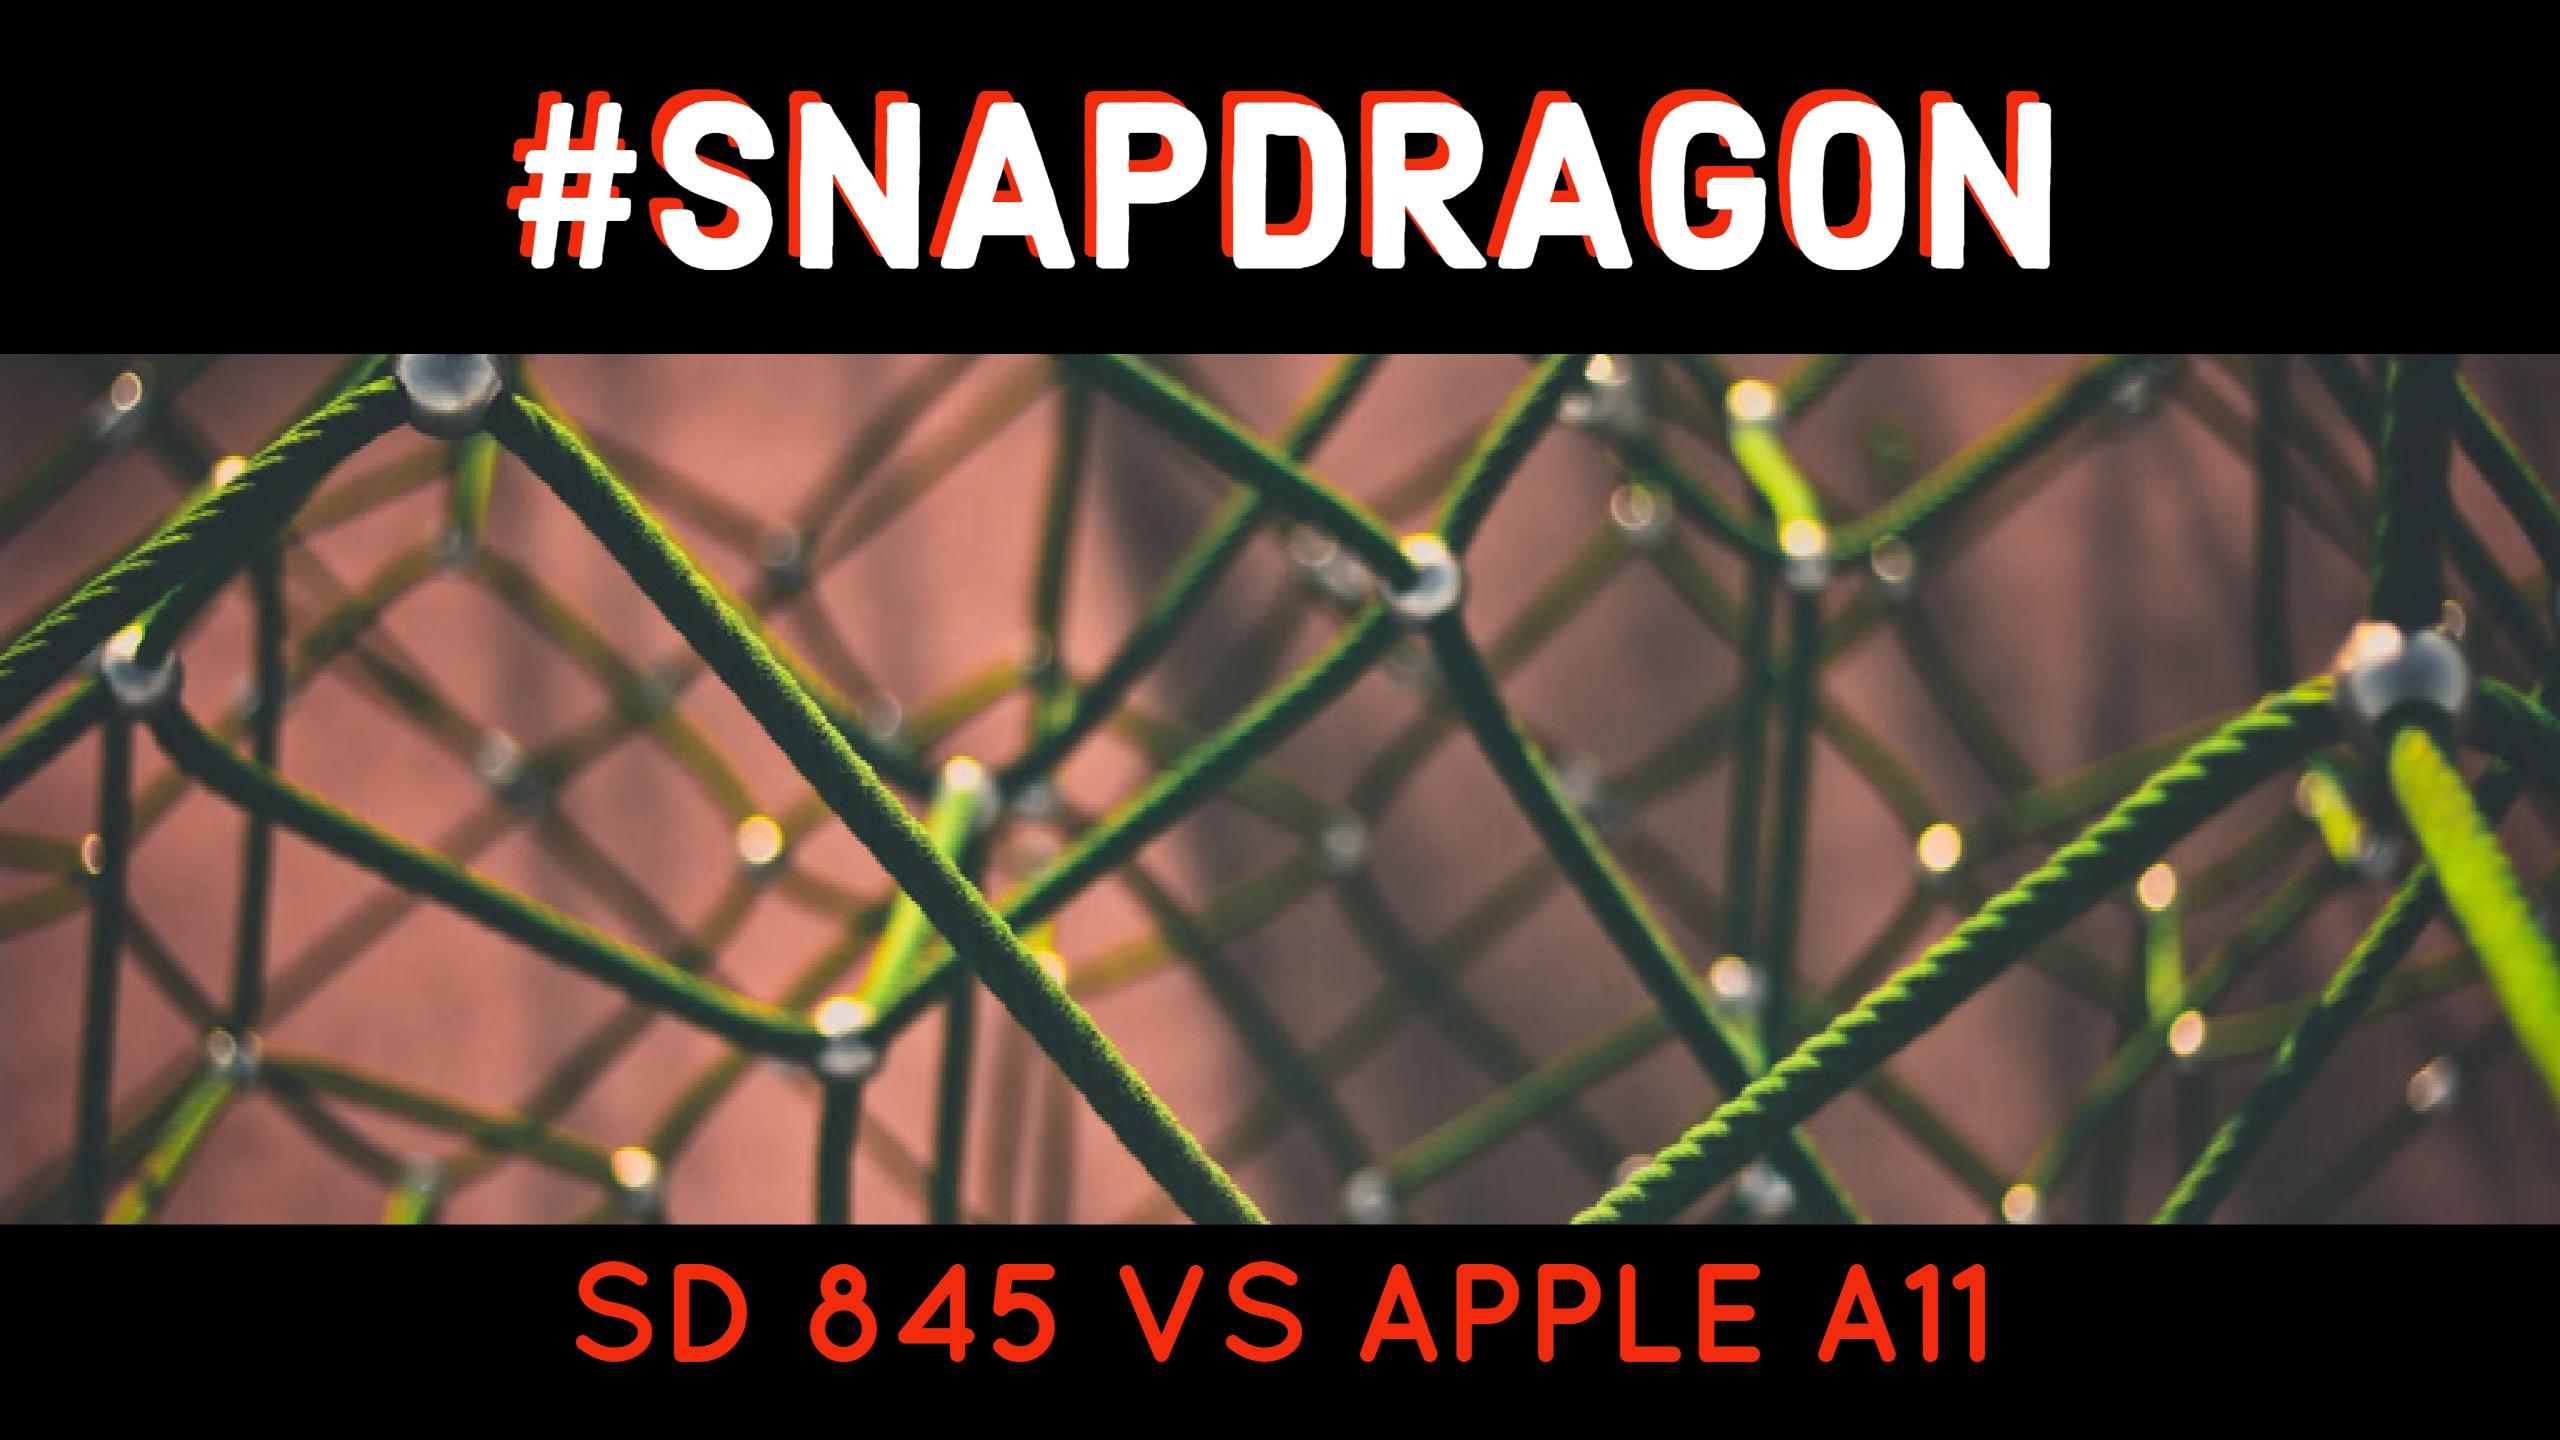 Snapdragon 845 vs A11 Bionic Chip - Based on Rumored Specifications